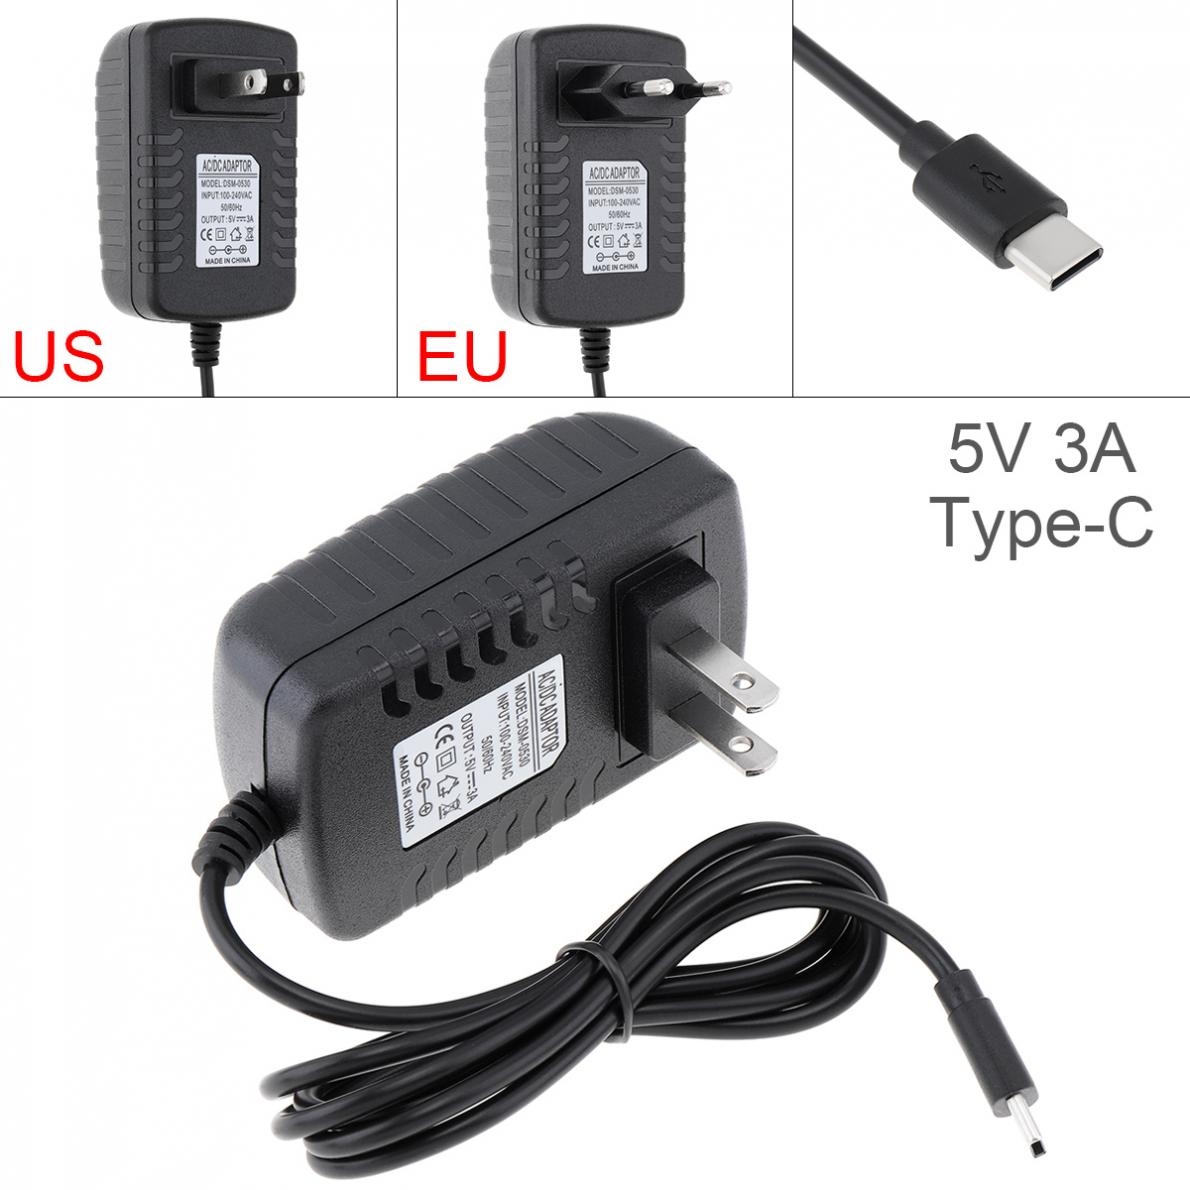 5V 3A Power Adapter Charger Converter Mobile Phone Charger Fit For Raspberry Pi4 TypeC USB Power Charging